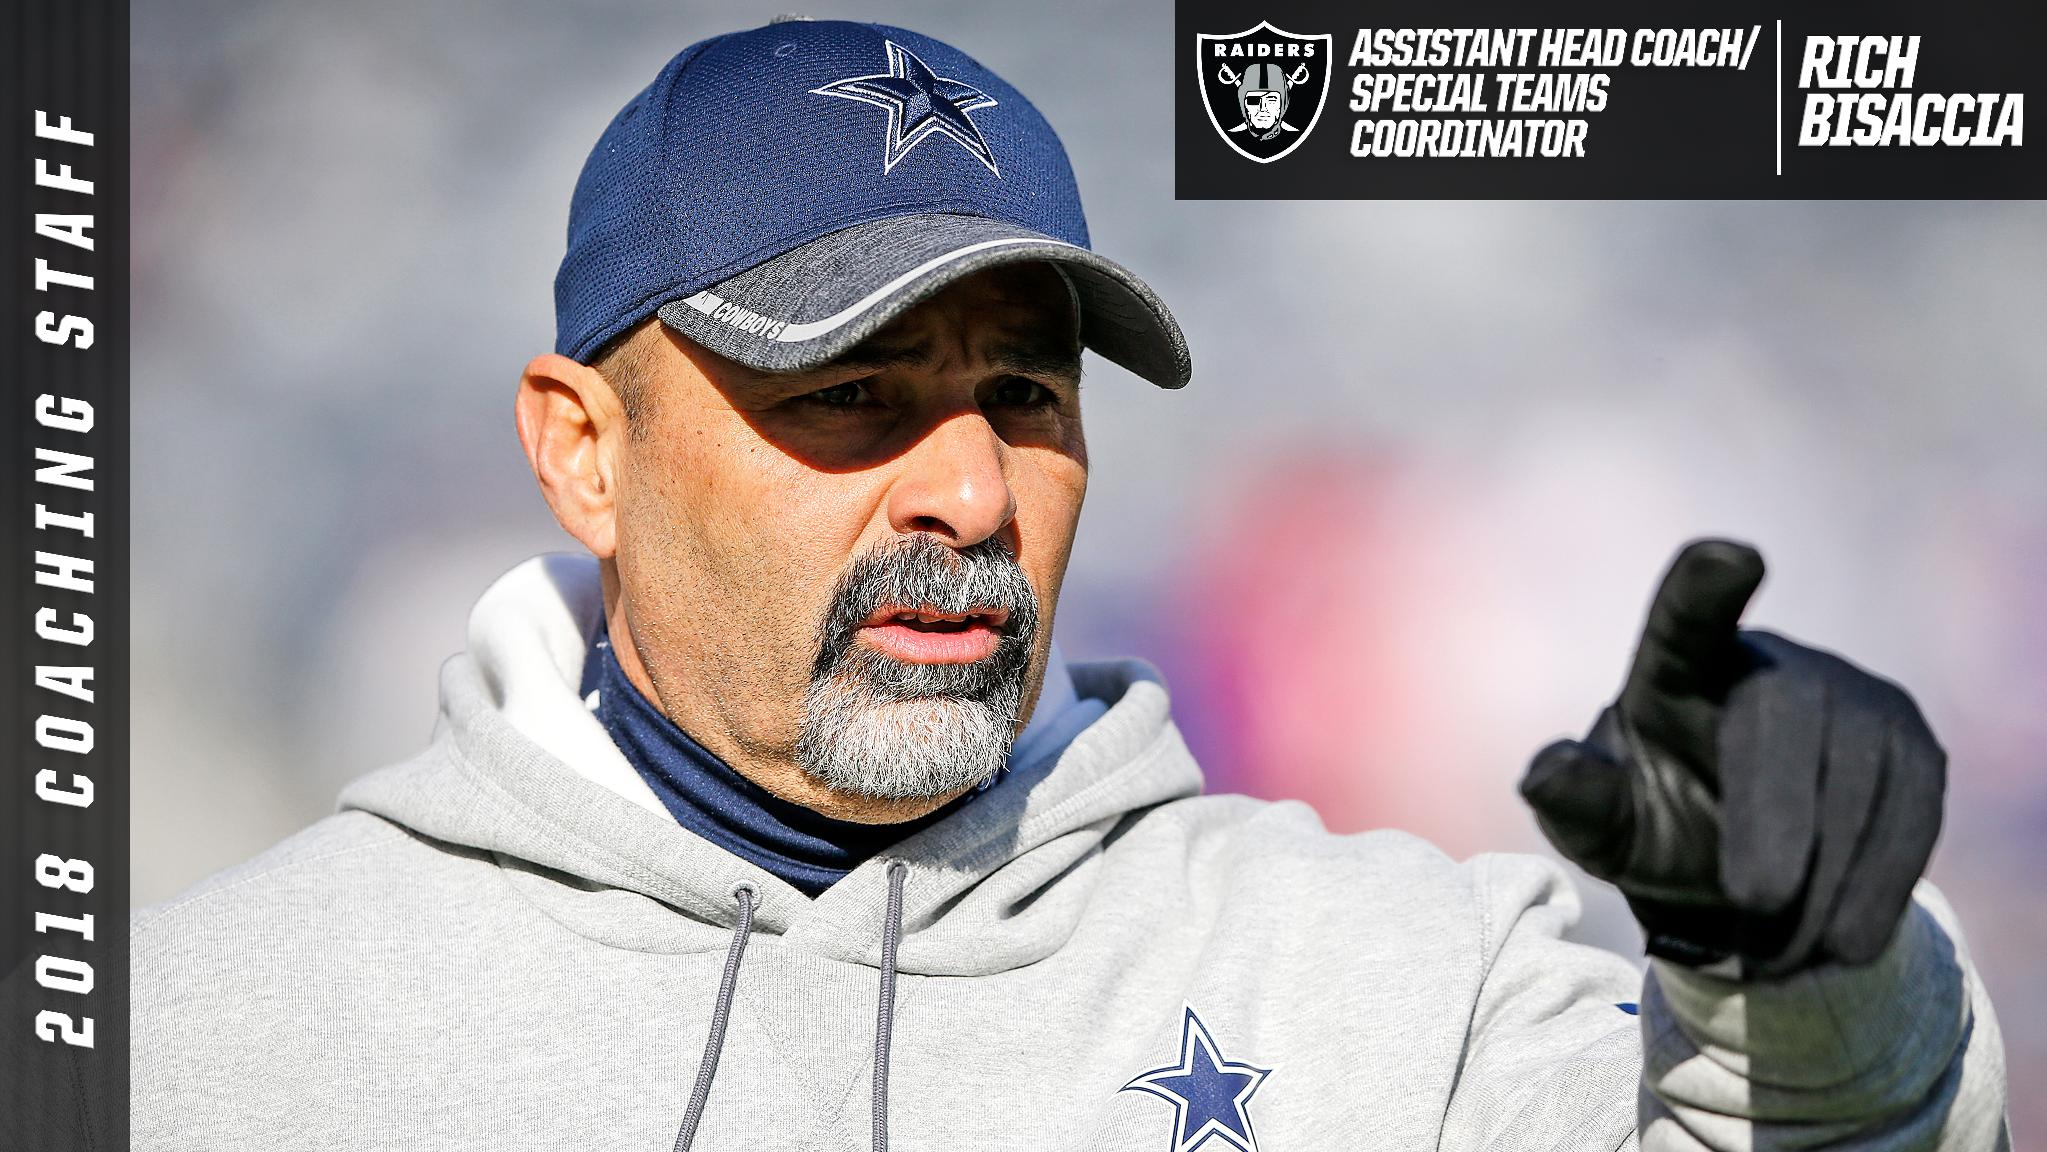 We have named Rich Bisaccia Assistant Head Coach/Special Teams Coordinator.  More: https://t.co/hdKJlFDuK9 https://t.co/kuO6DCDe3R